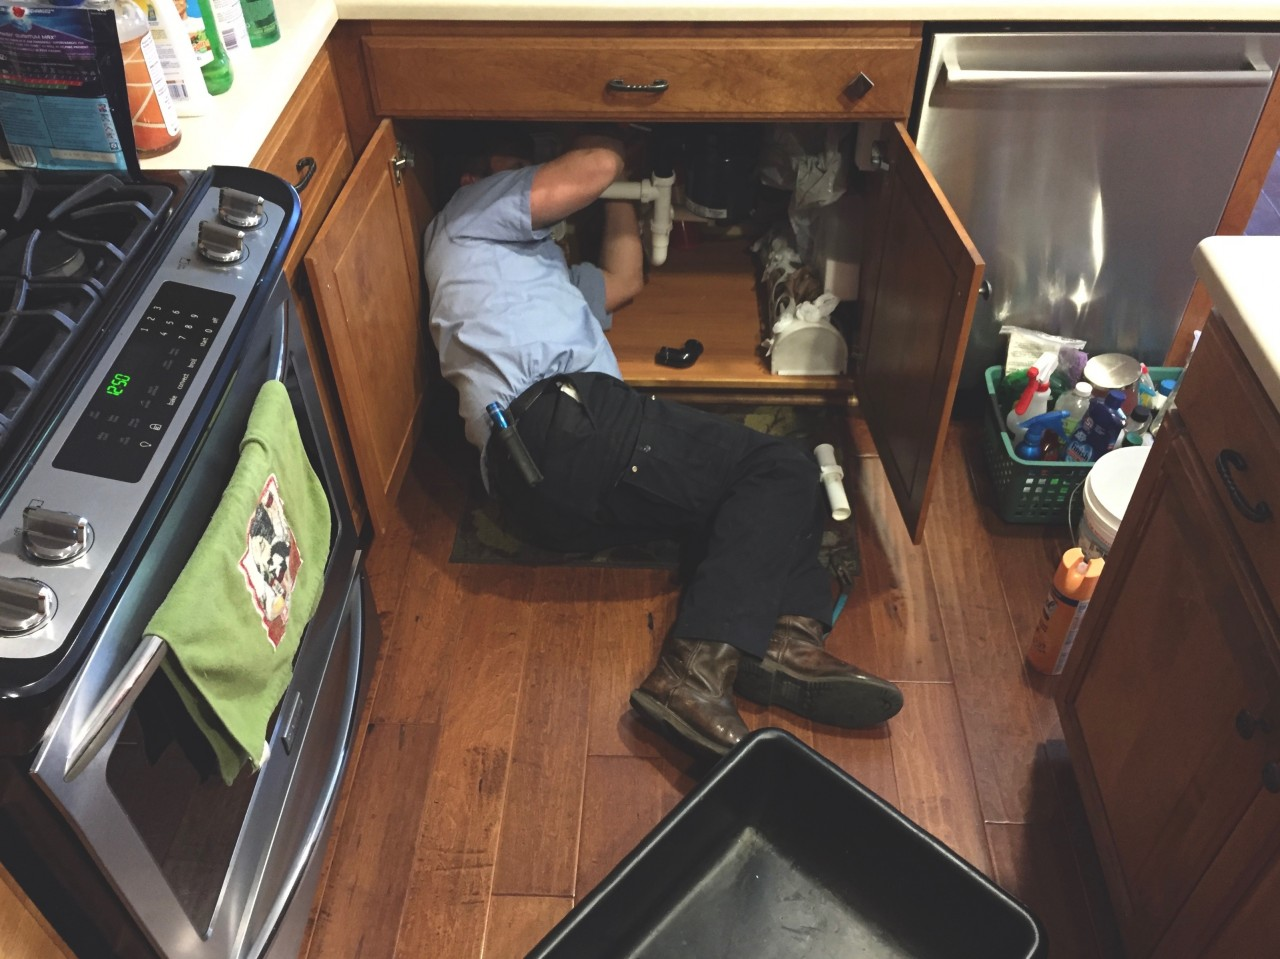 fixing-the-kitchen-sink-maintenance-tonythetigersson-tony-andrews-photography_t20_g8ykWY